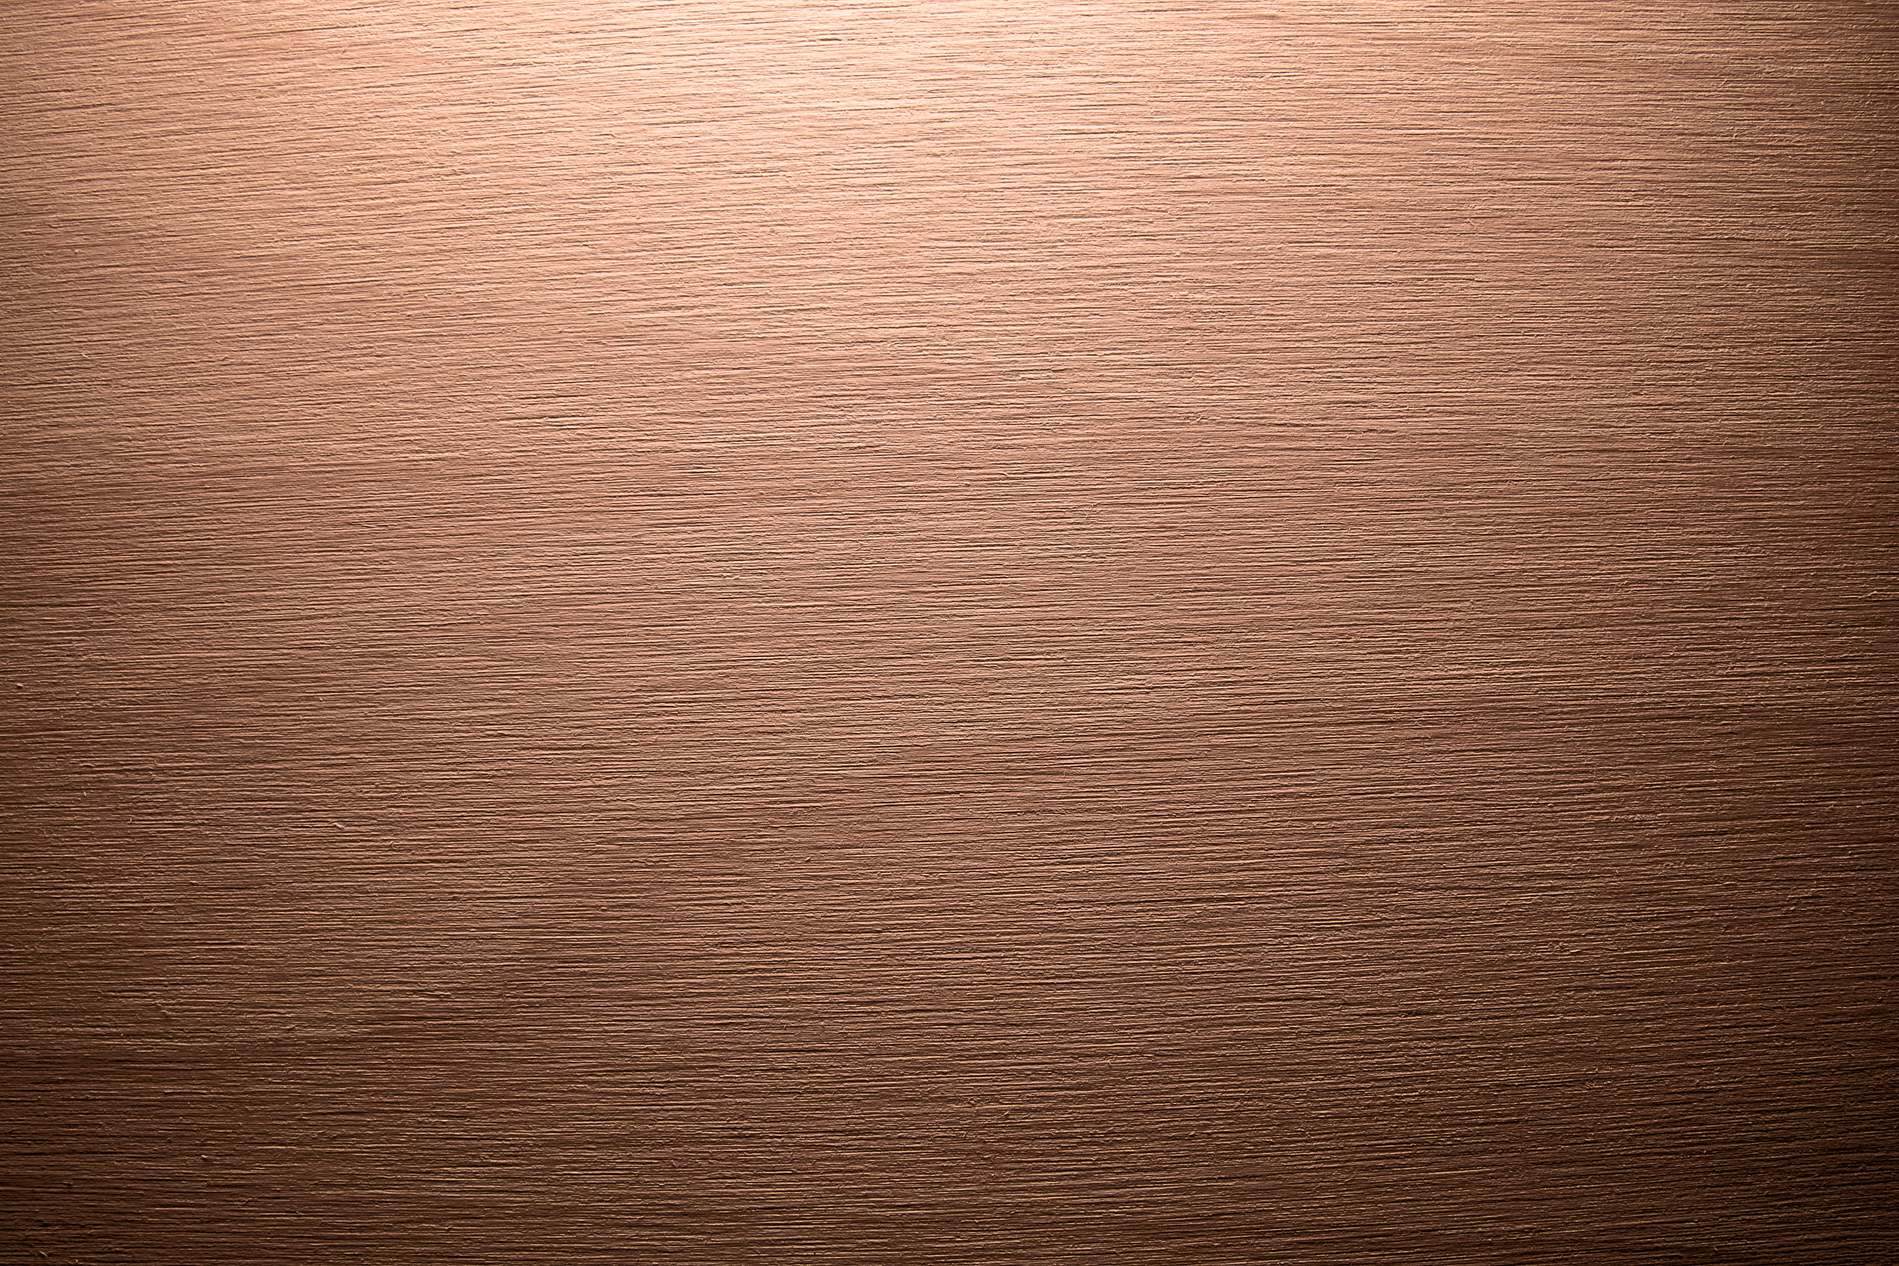 Cream Colored Wood Texture Background PhotoHDX